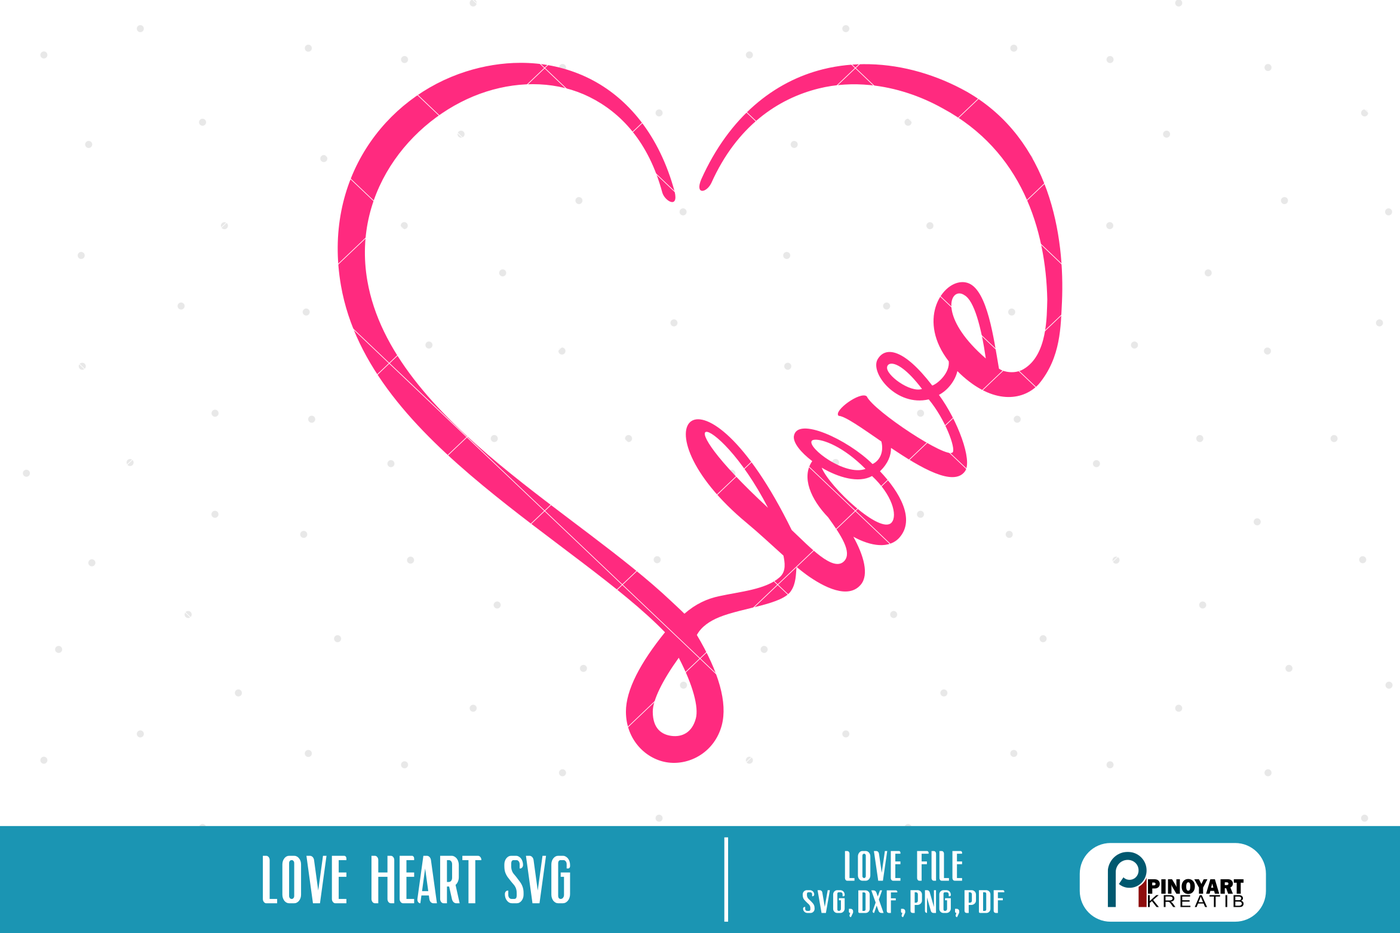 Love Heart Svg Love Svg Valentine Heart Svg Svg Files For